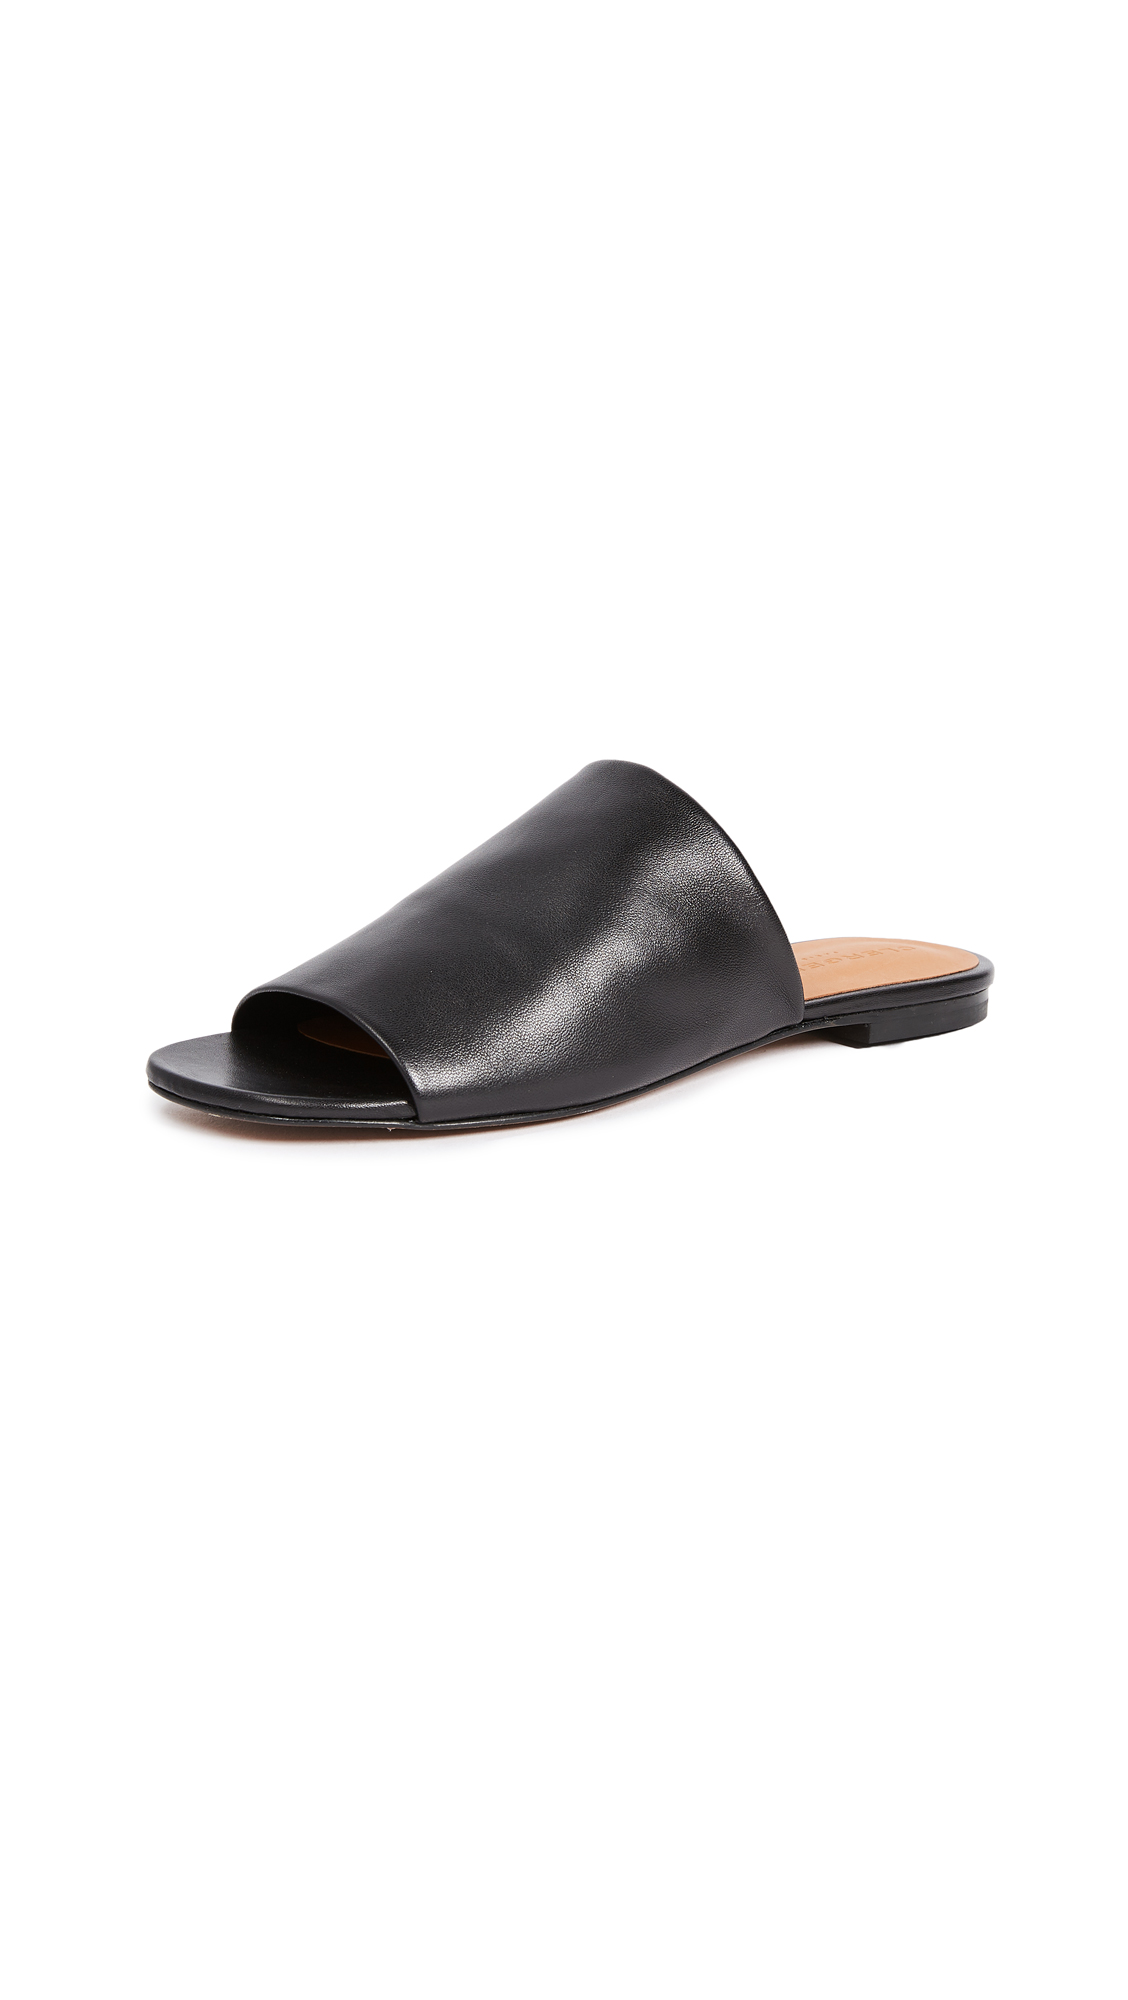 Robert Clergerie Itou Sandals - Noir/Gold